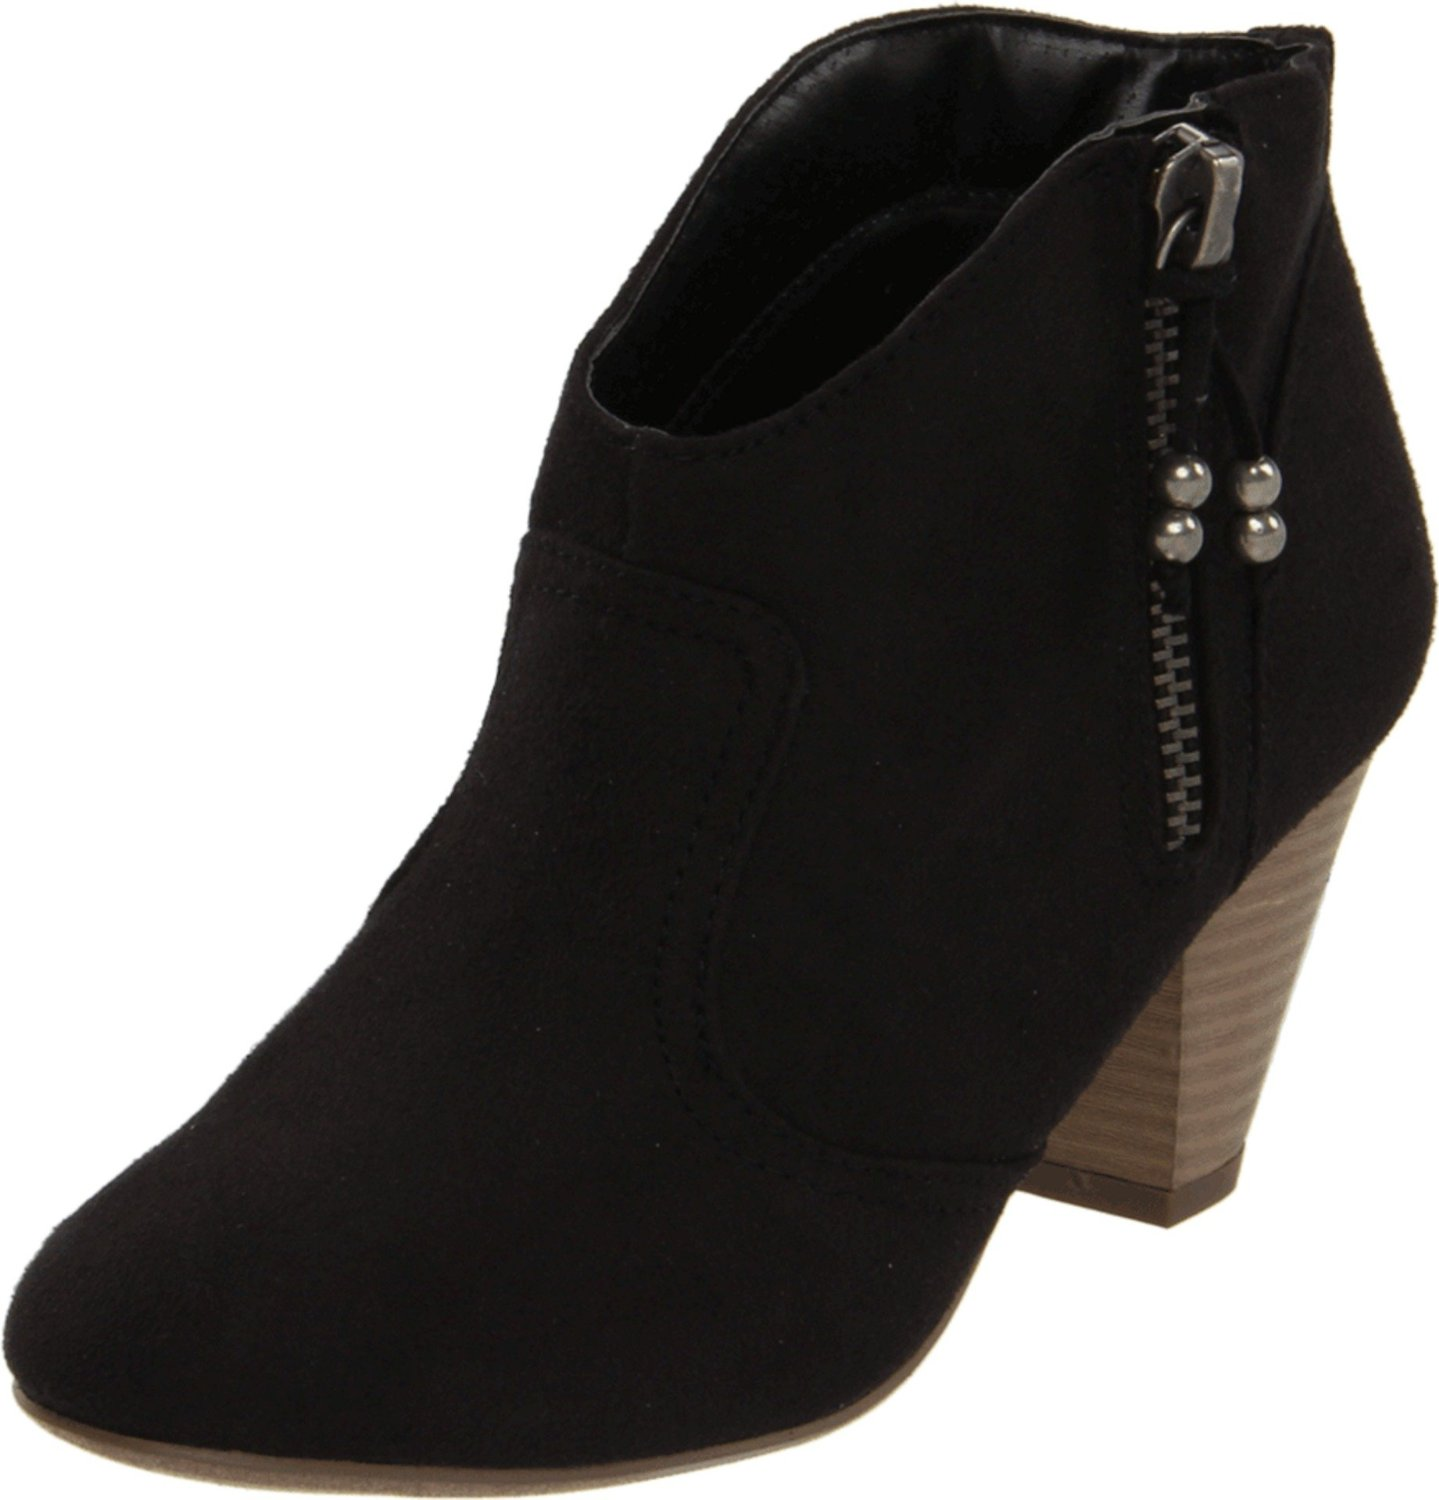 fashion trends ankle boots women 39 s cowboy high heel boots. Black Bedroom Furniture Sets. Home Design Ideas